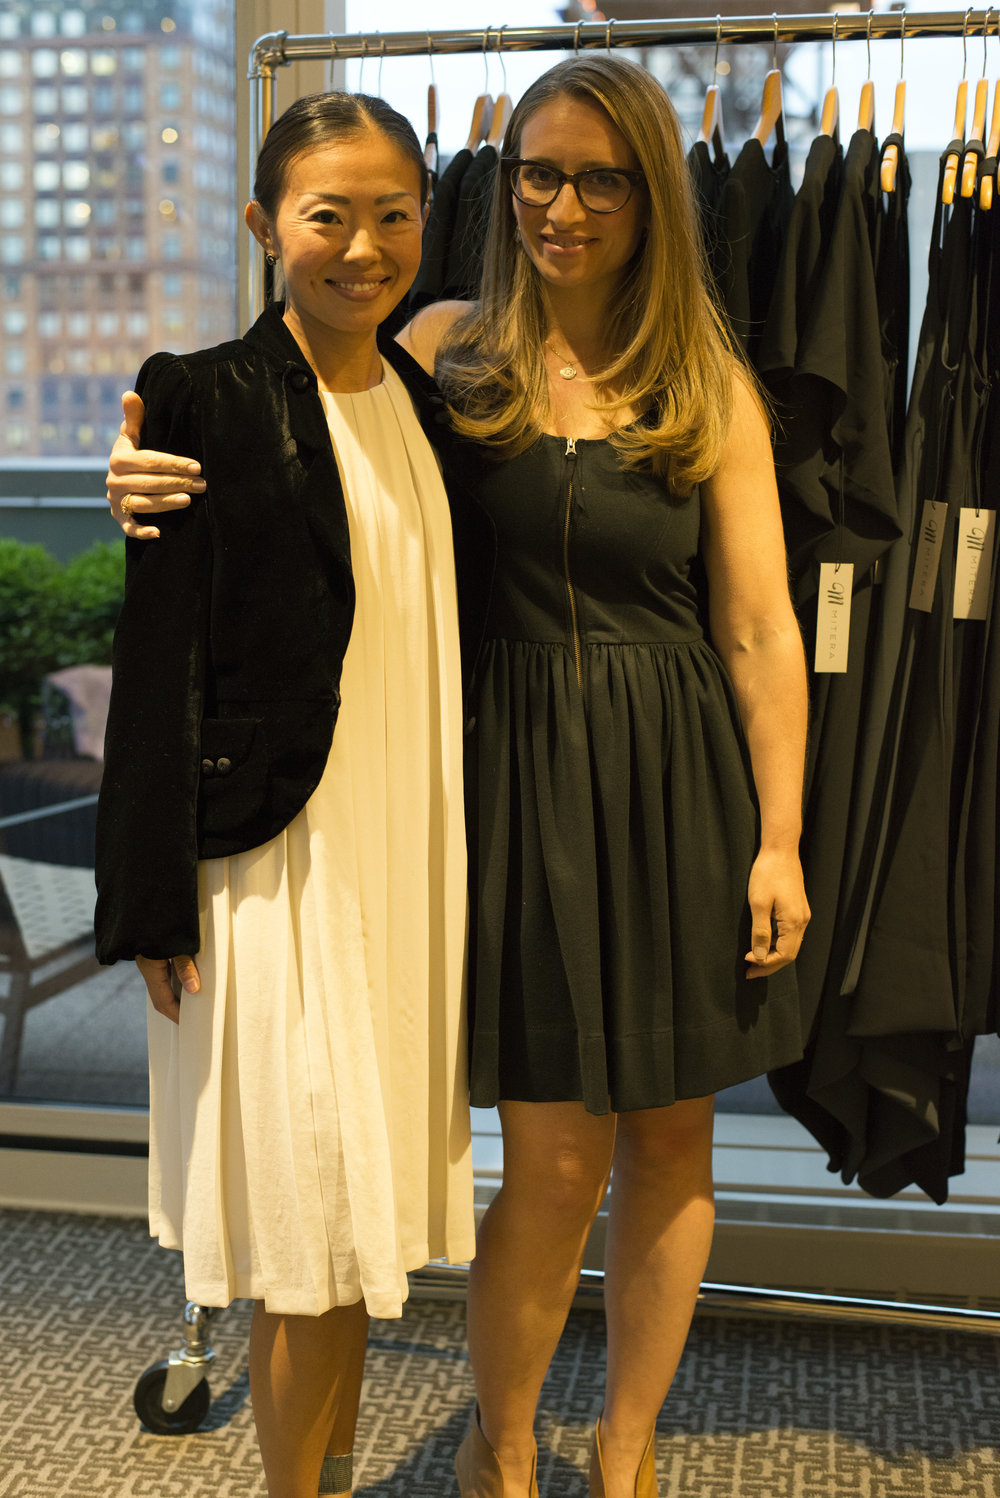 Yoko Shimada, Founder of Mitera and Randi Zinn of Beyond Mom, event's co-host.